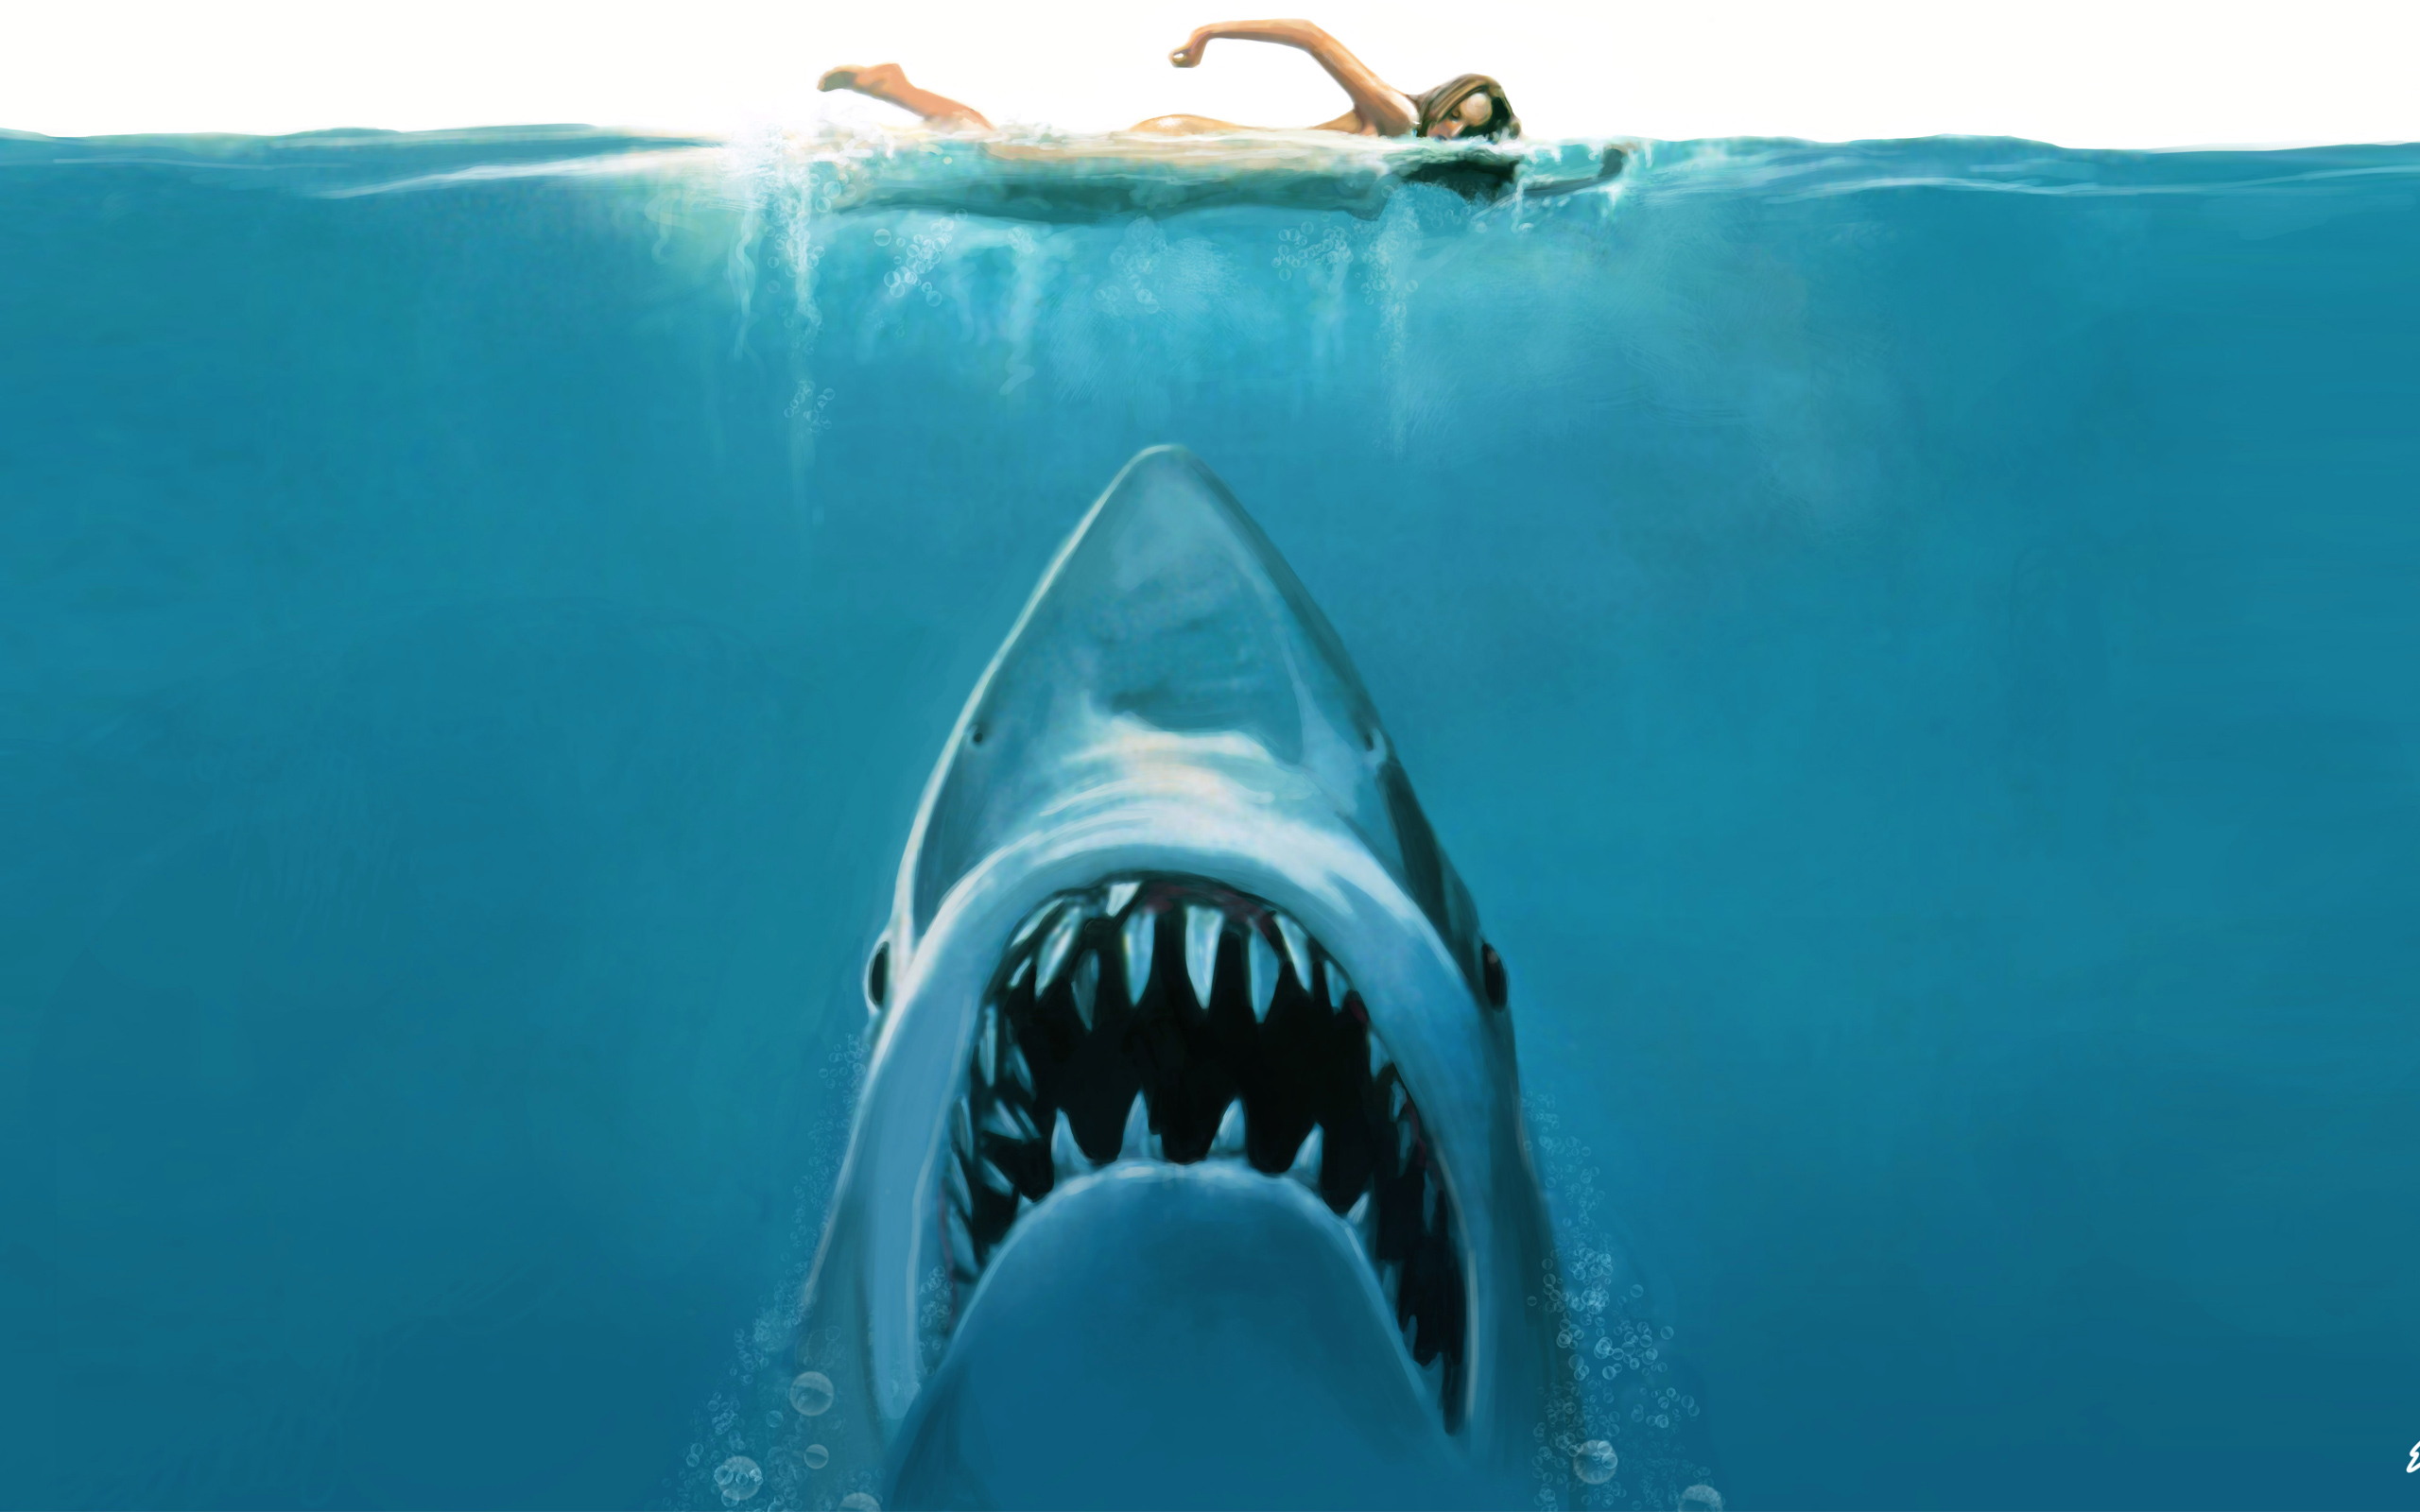 Jaws Movie Concept Wallpapers HD Wallpapers 2560x1600